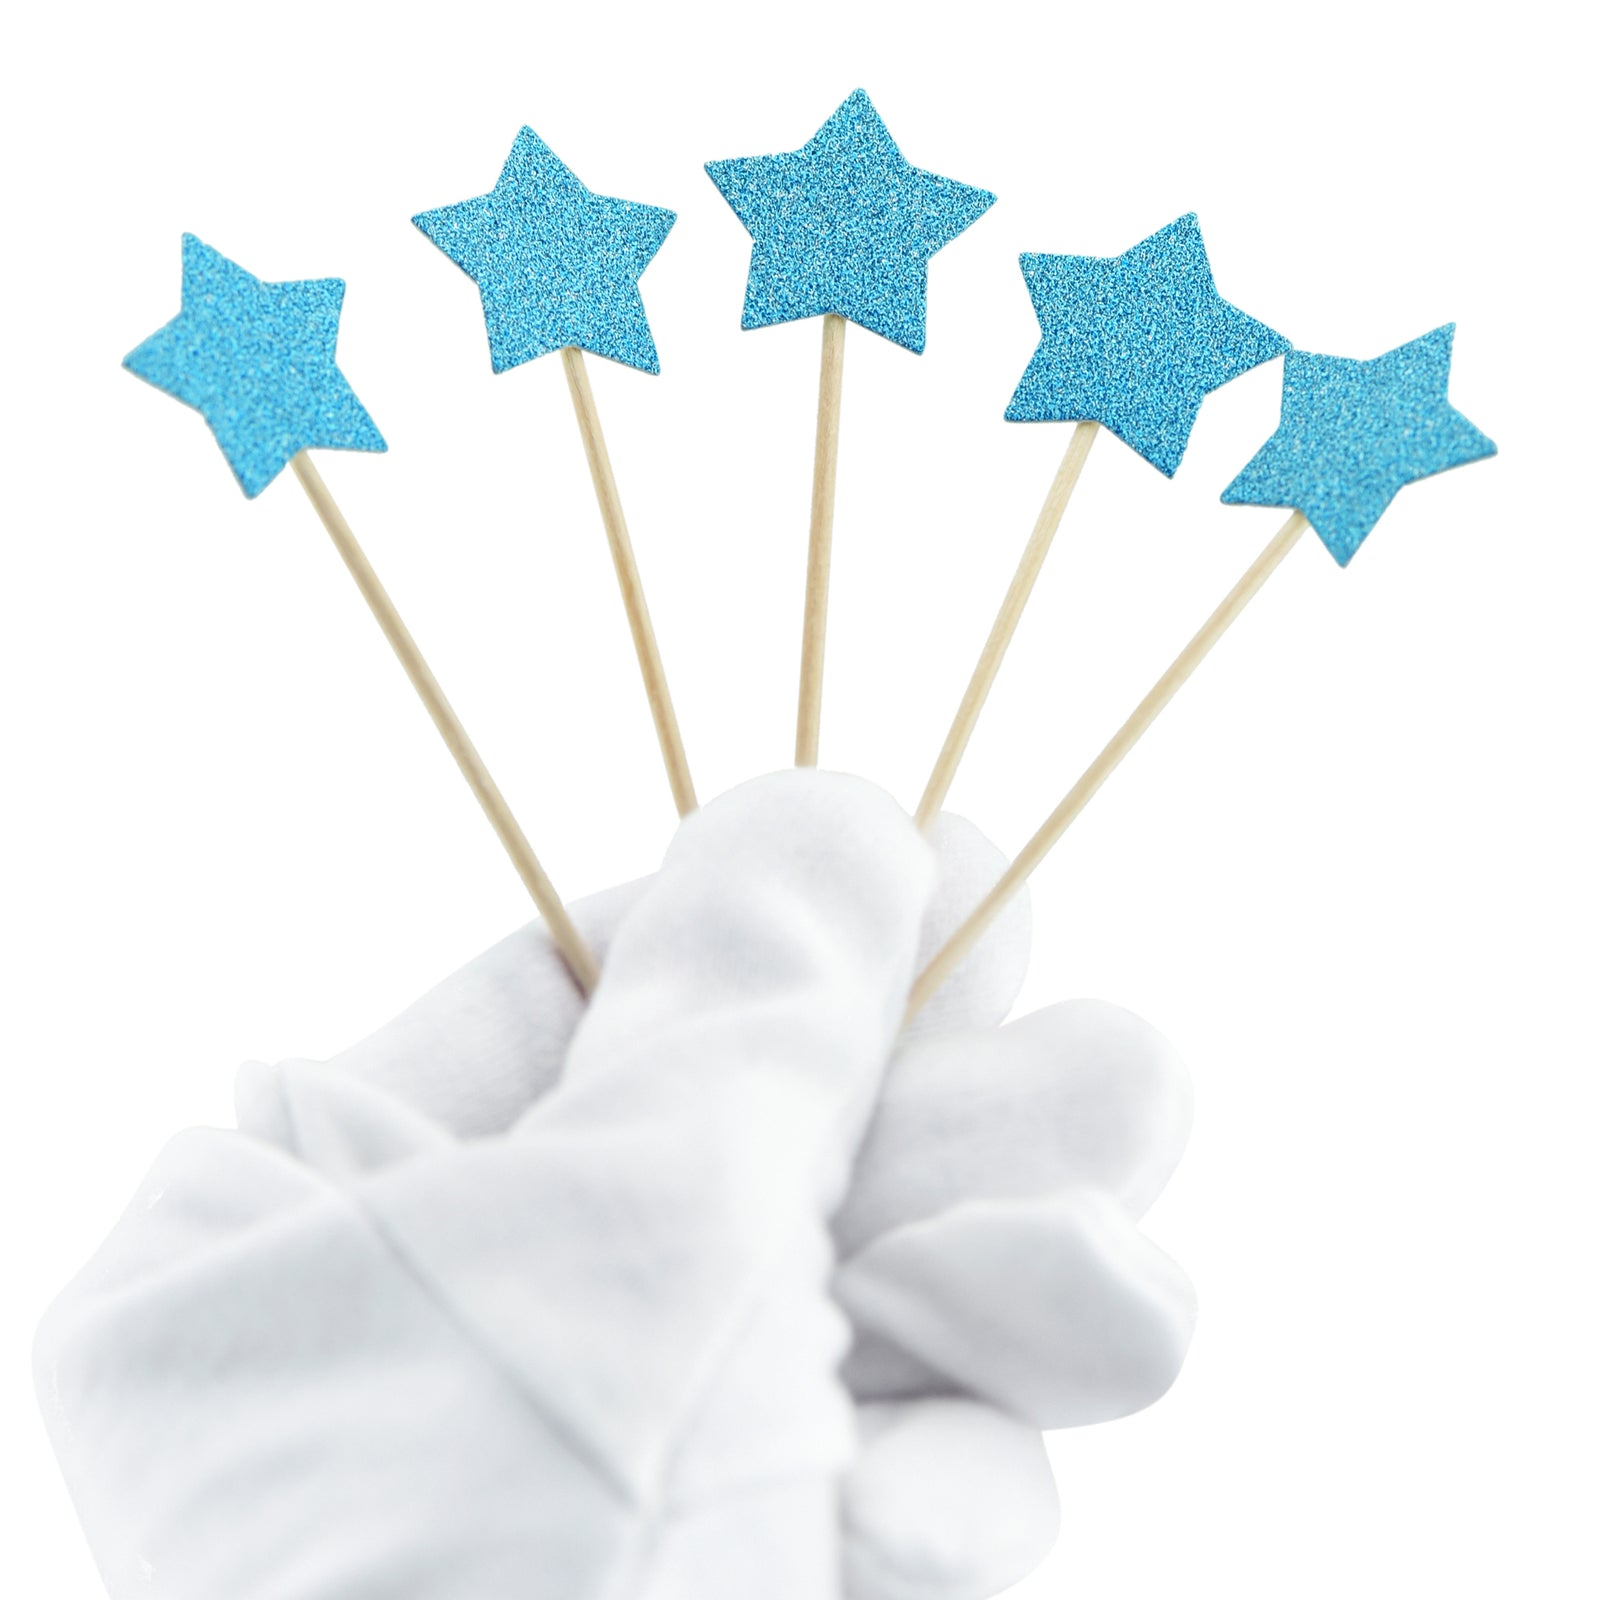 Blue Star Cake Toppers 50 Pcs